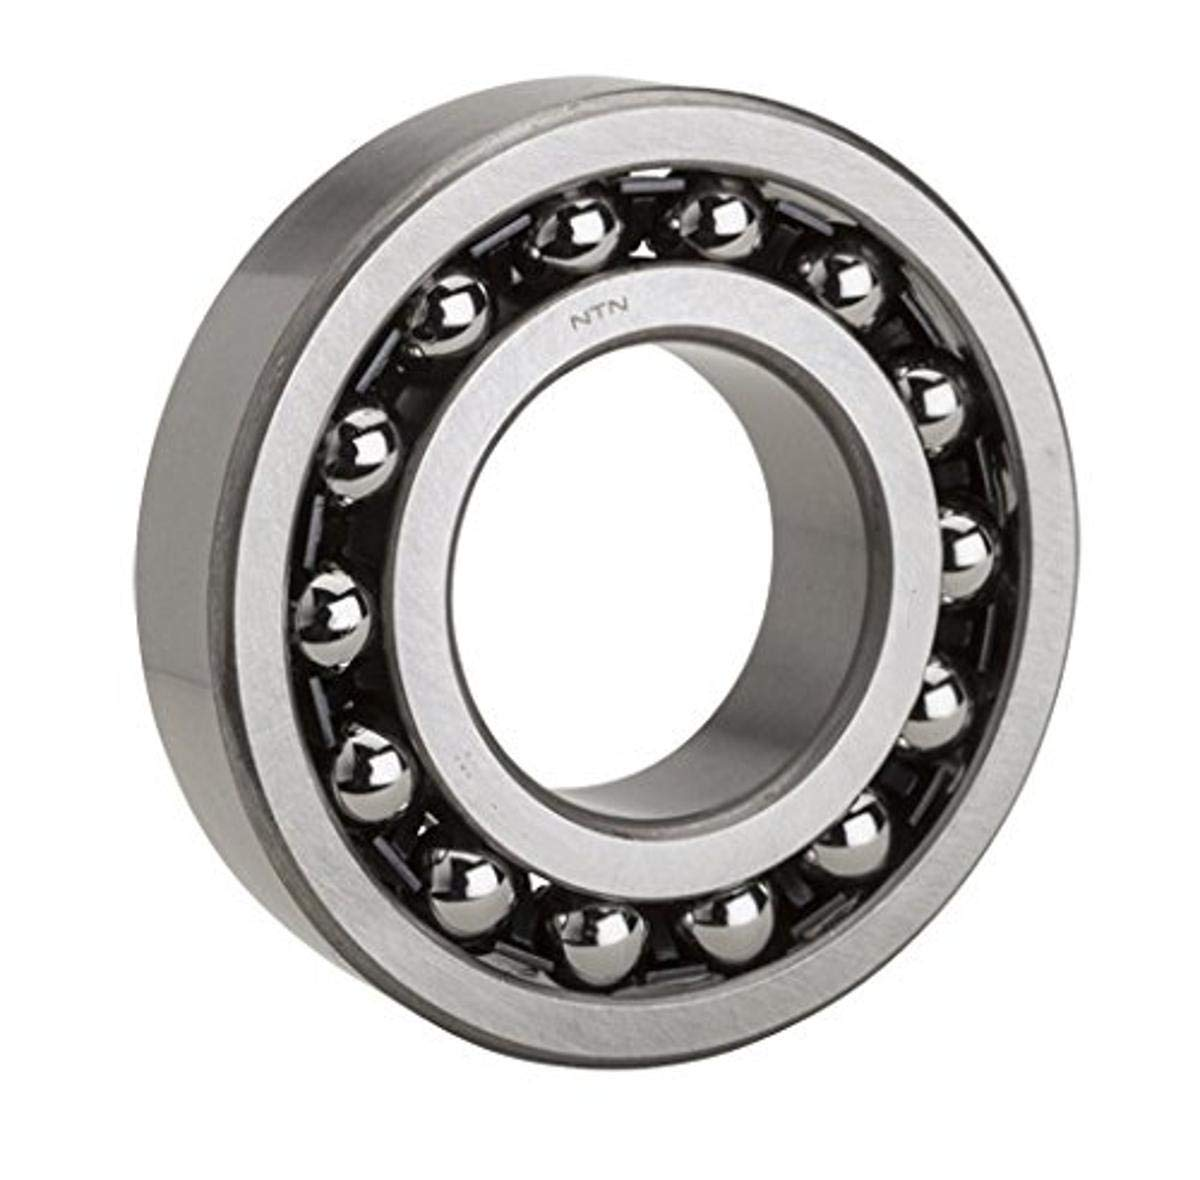 27 mm Width 110 mm OD Normal Clearance Open 50 mm Bore ID NTN Bearing 1310 Double Row Self-Aligning Radial Ball Bearing Standard Cage